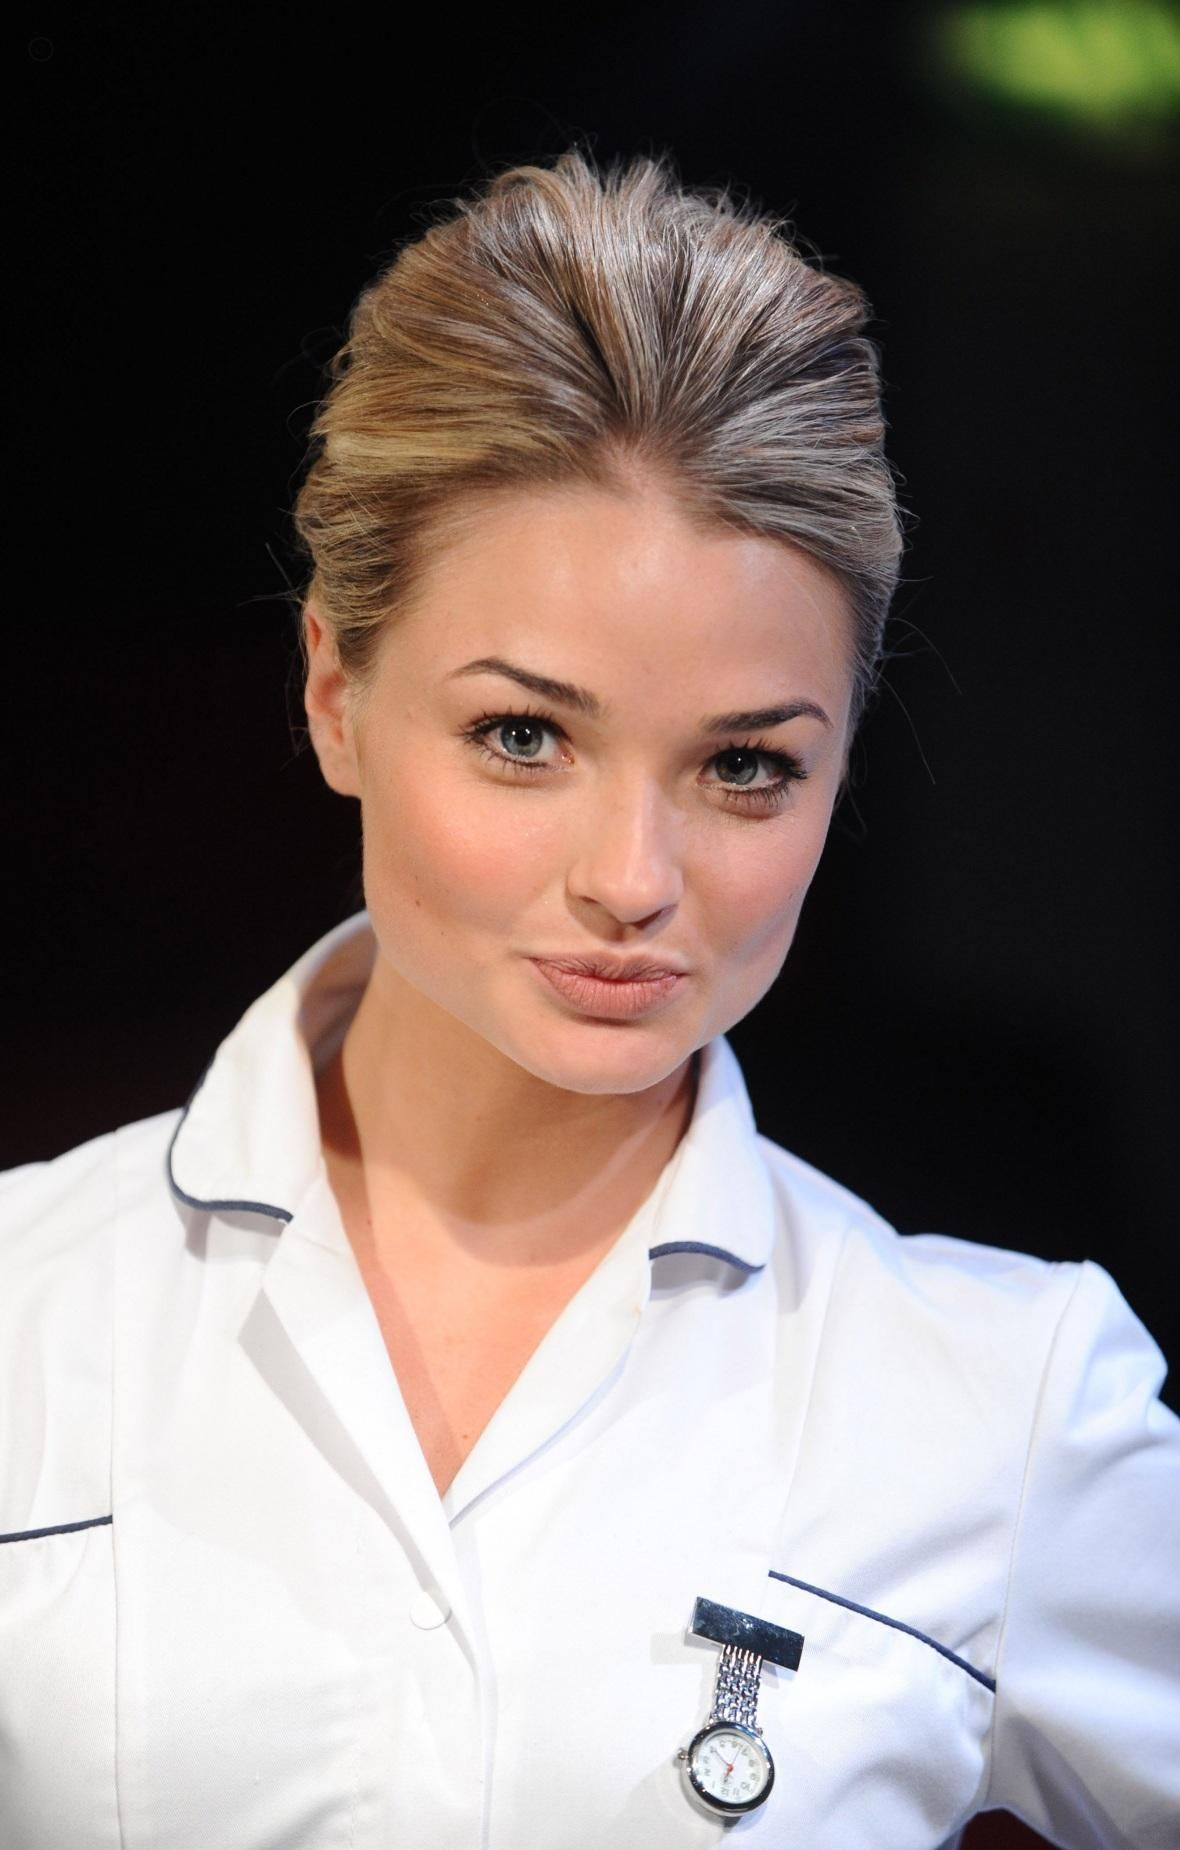 Emma rigby photos pictures stills images wallpapers gallery - Emma Rigby Actress Atriz Once Upon A Time In Wonderland Queen Of